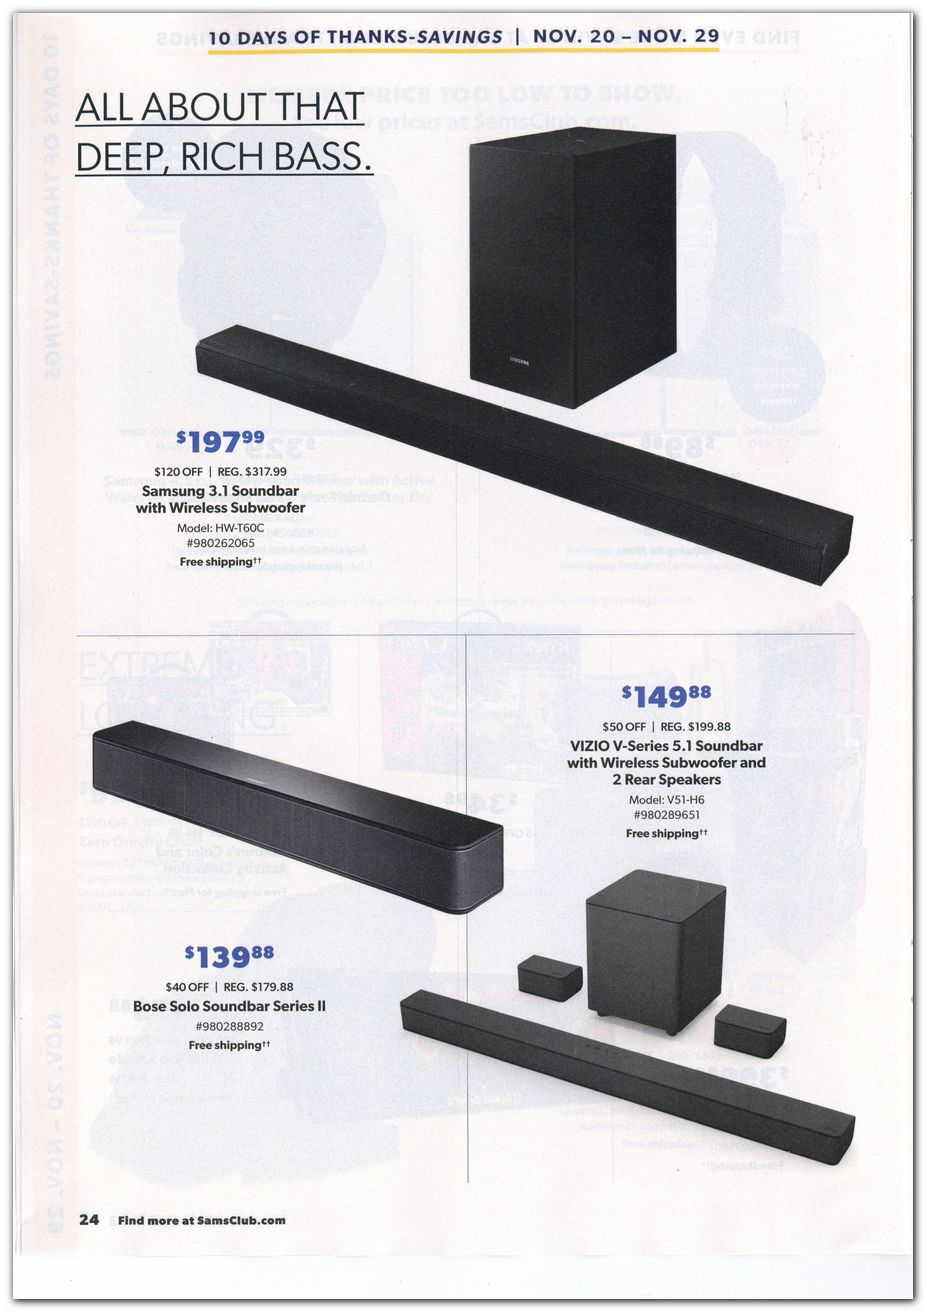 Sam's Club Black Friday 2020 Page 6